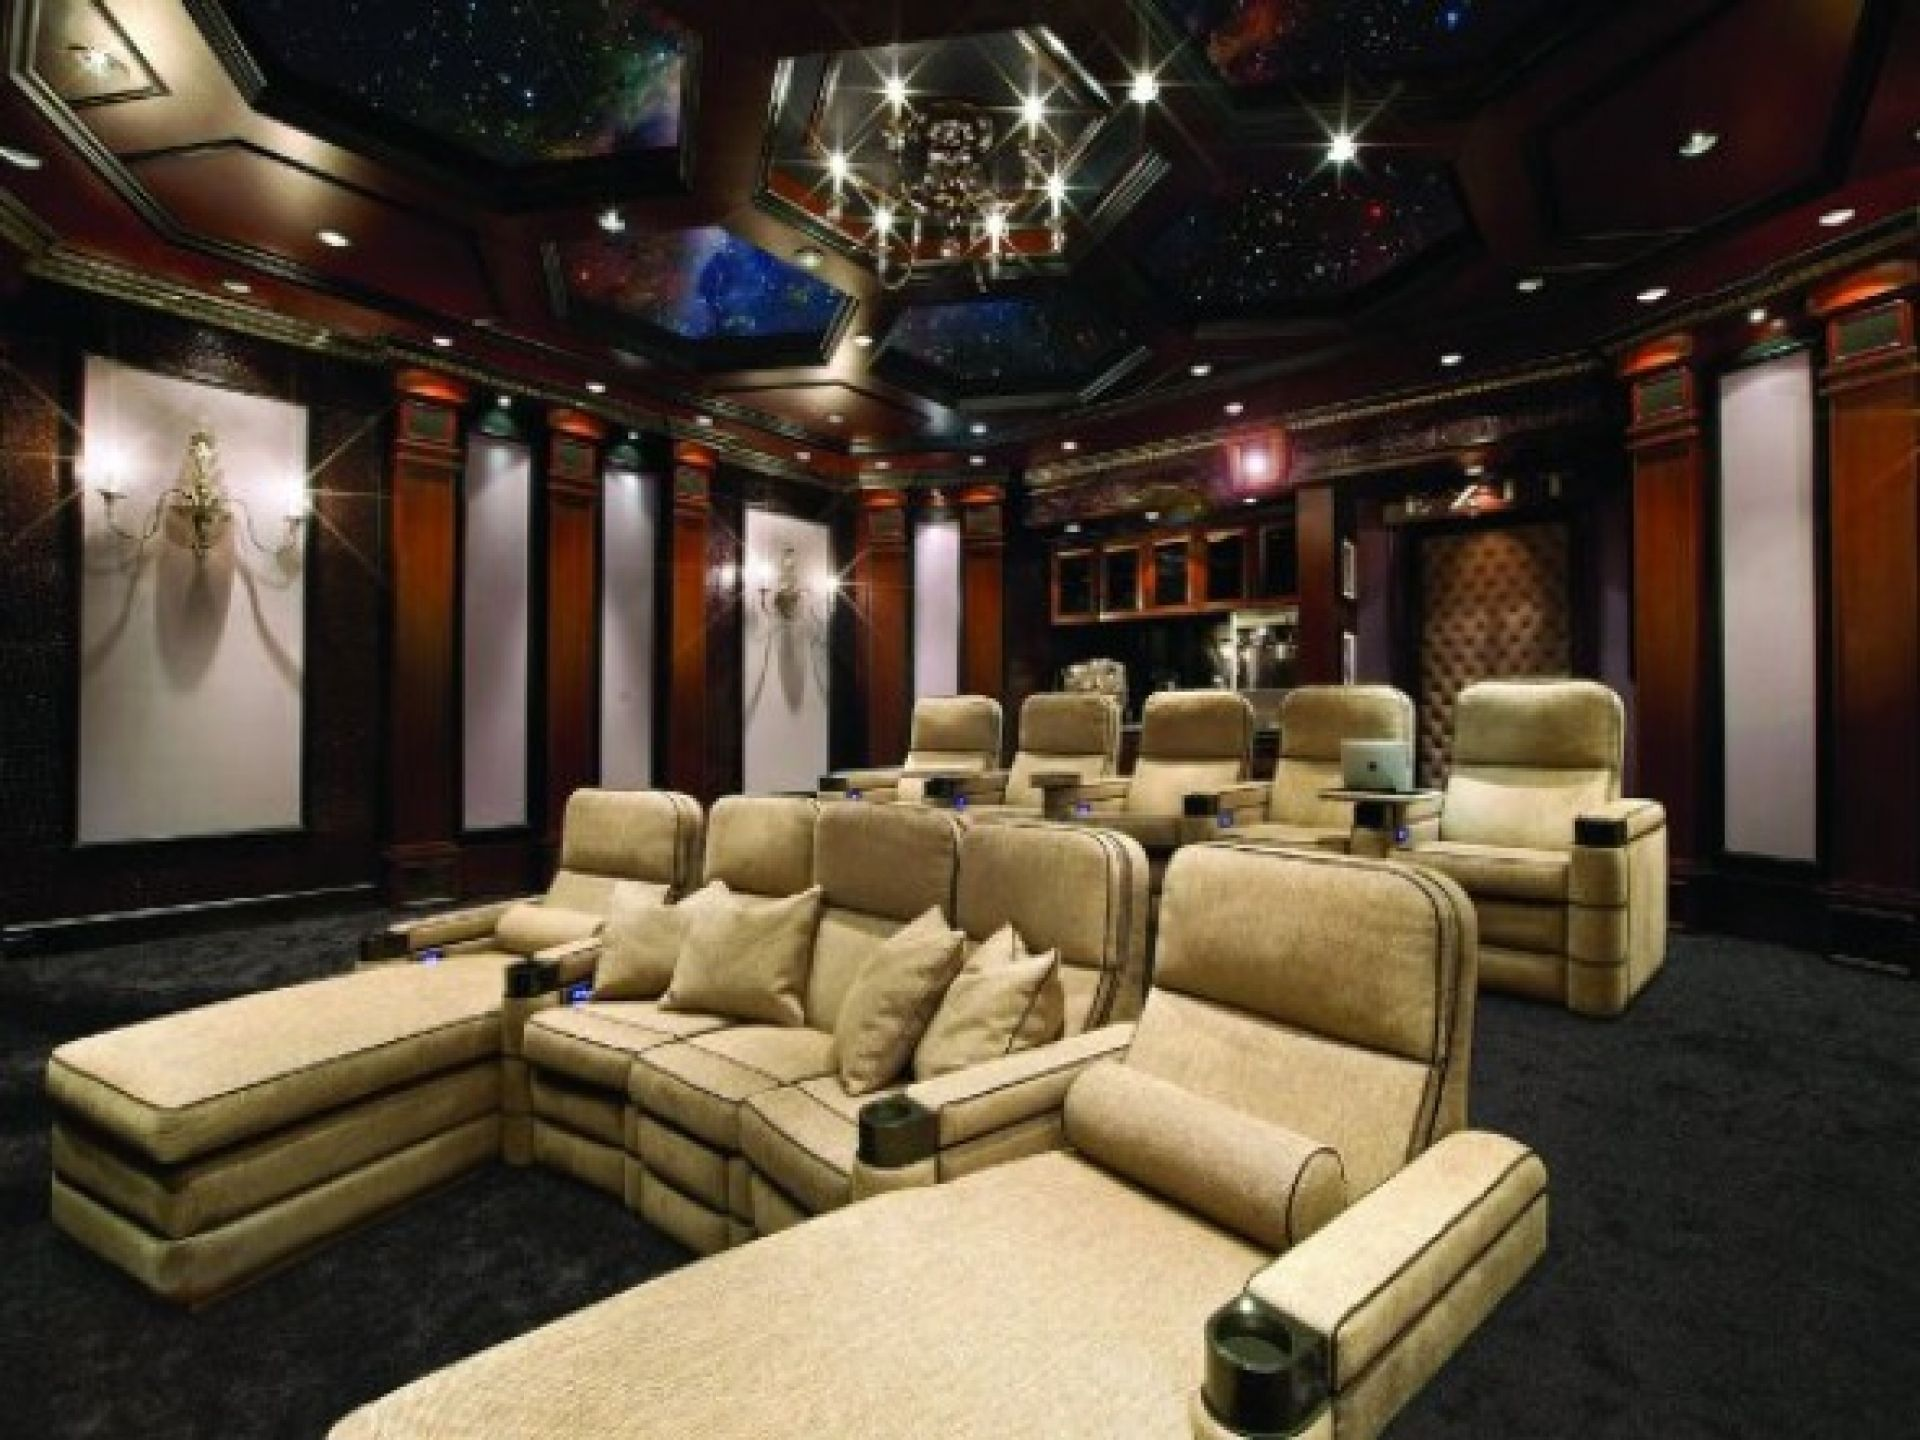 Elegant Cool Home Theater Design Ideas:endearing Luxury Home Theater Design Idea  With Stary Theme